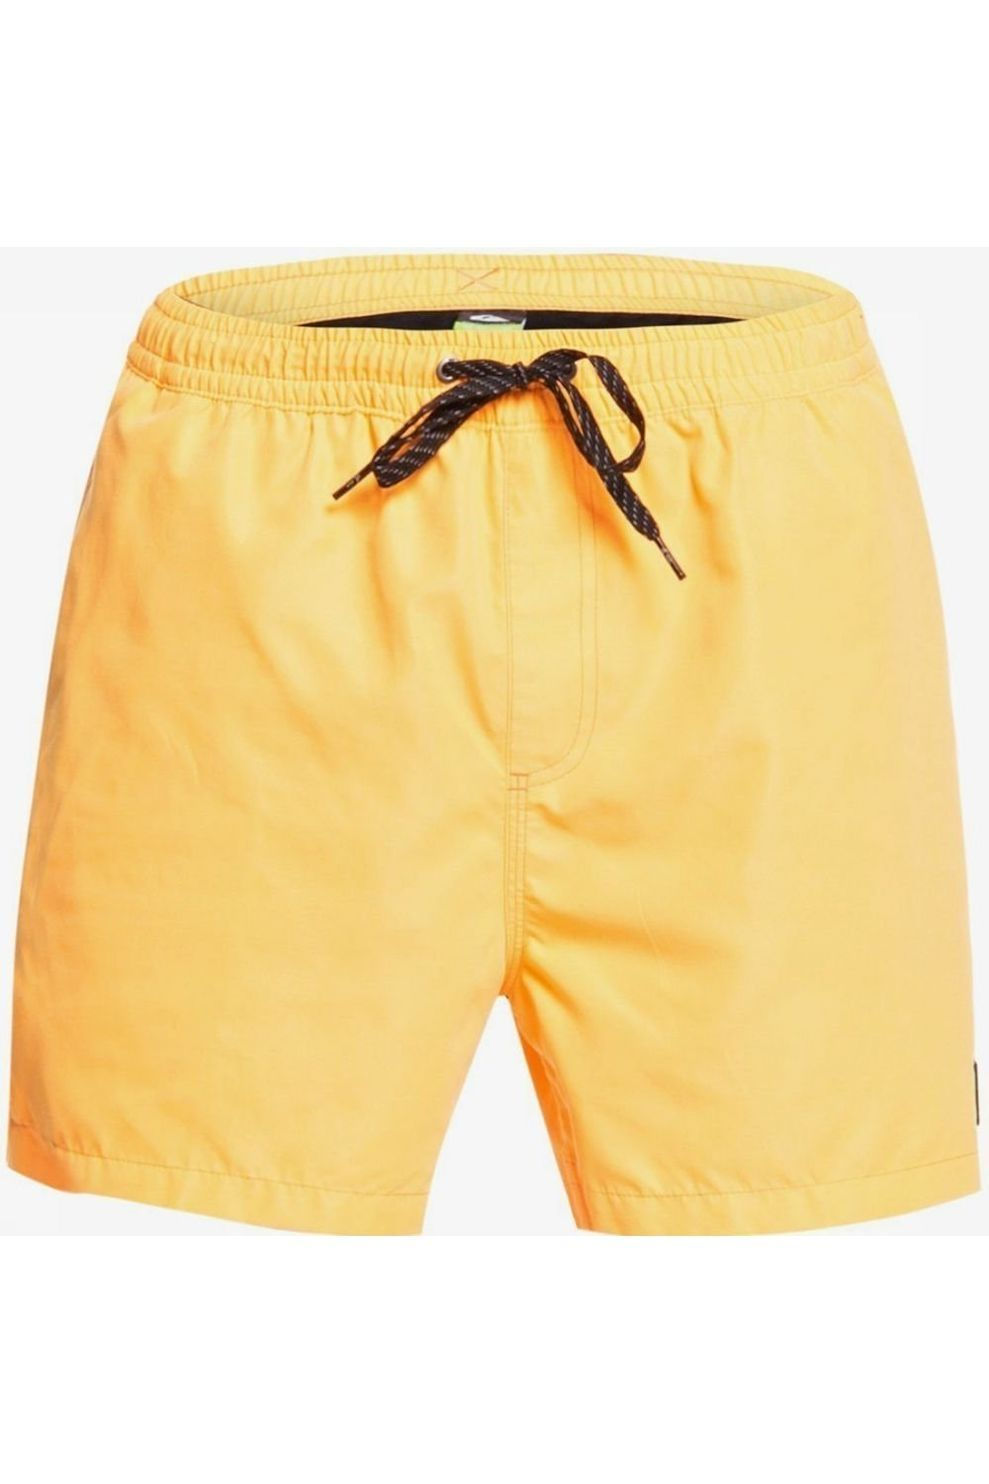 Quiksilver Zwemshort Everyday Volley 15 voor heren - Oranje - Maat: M